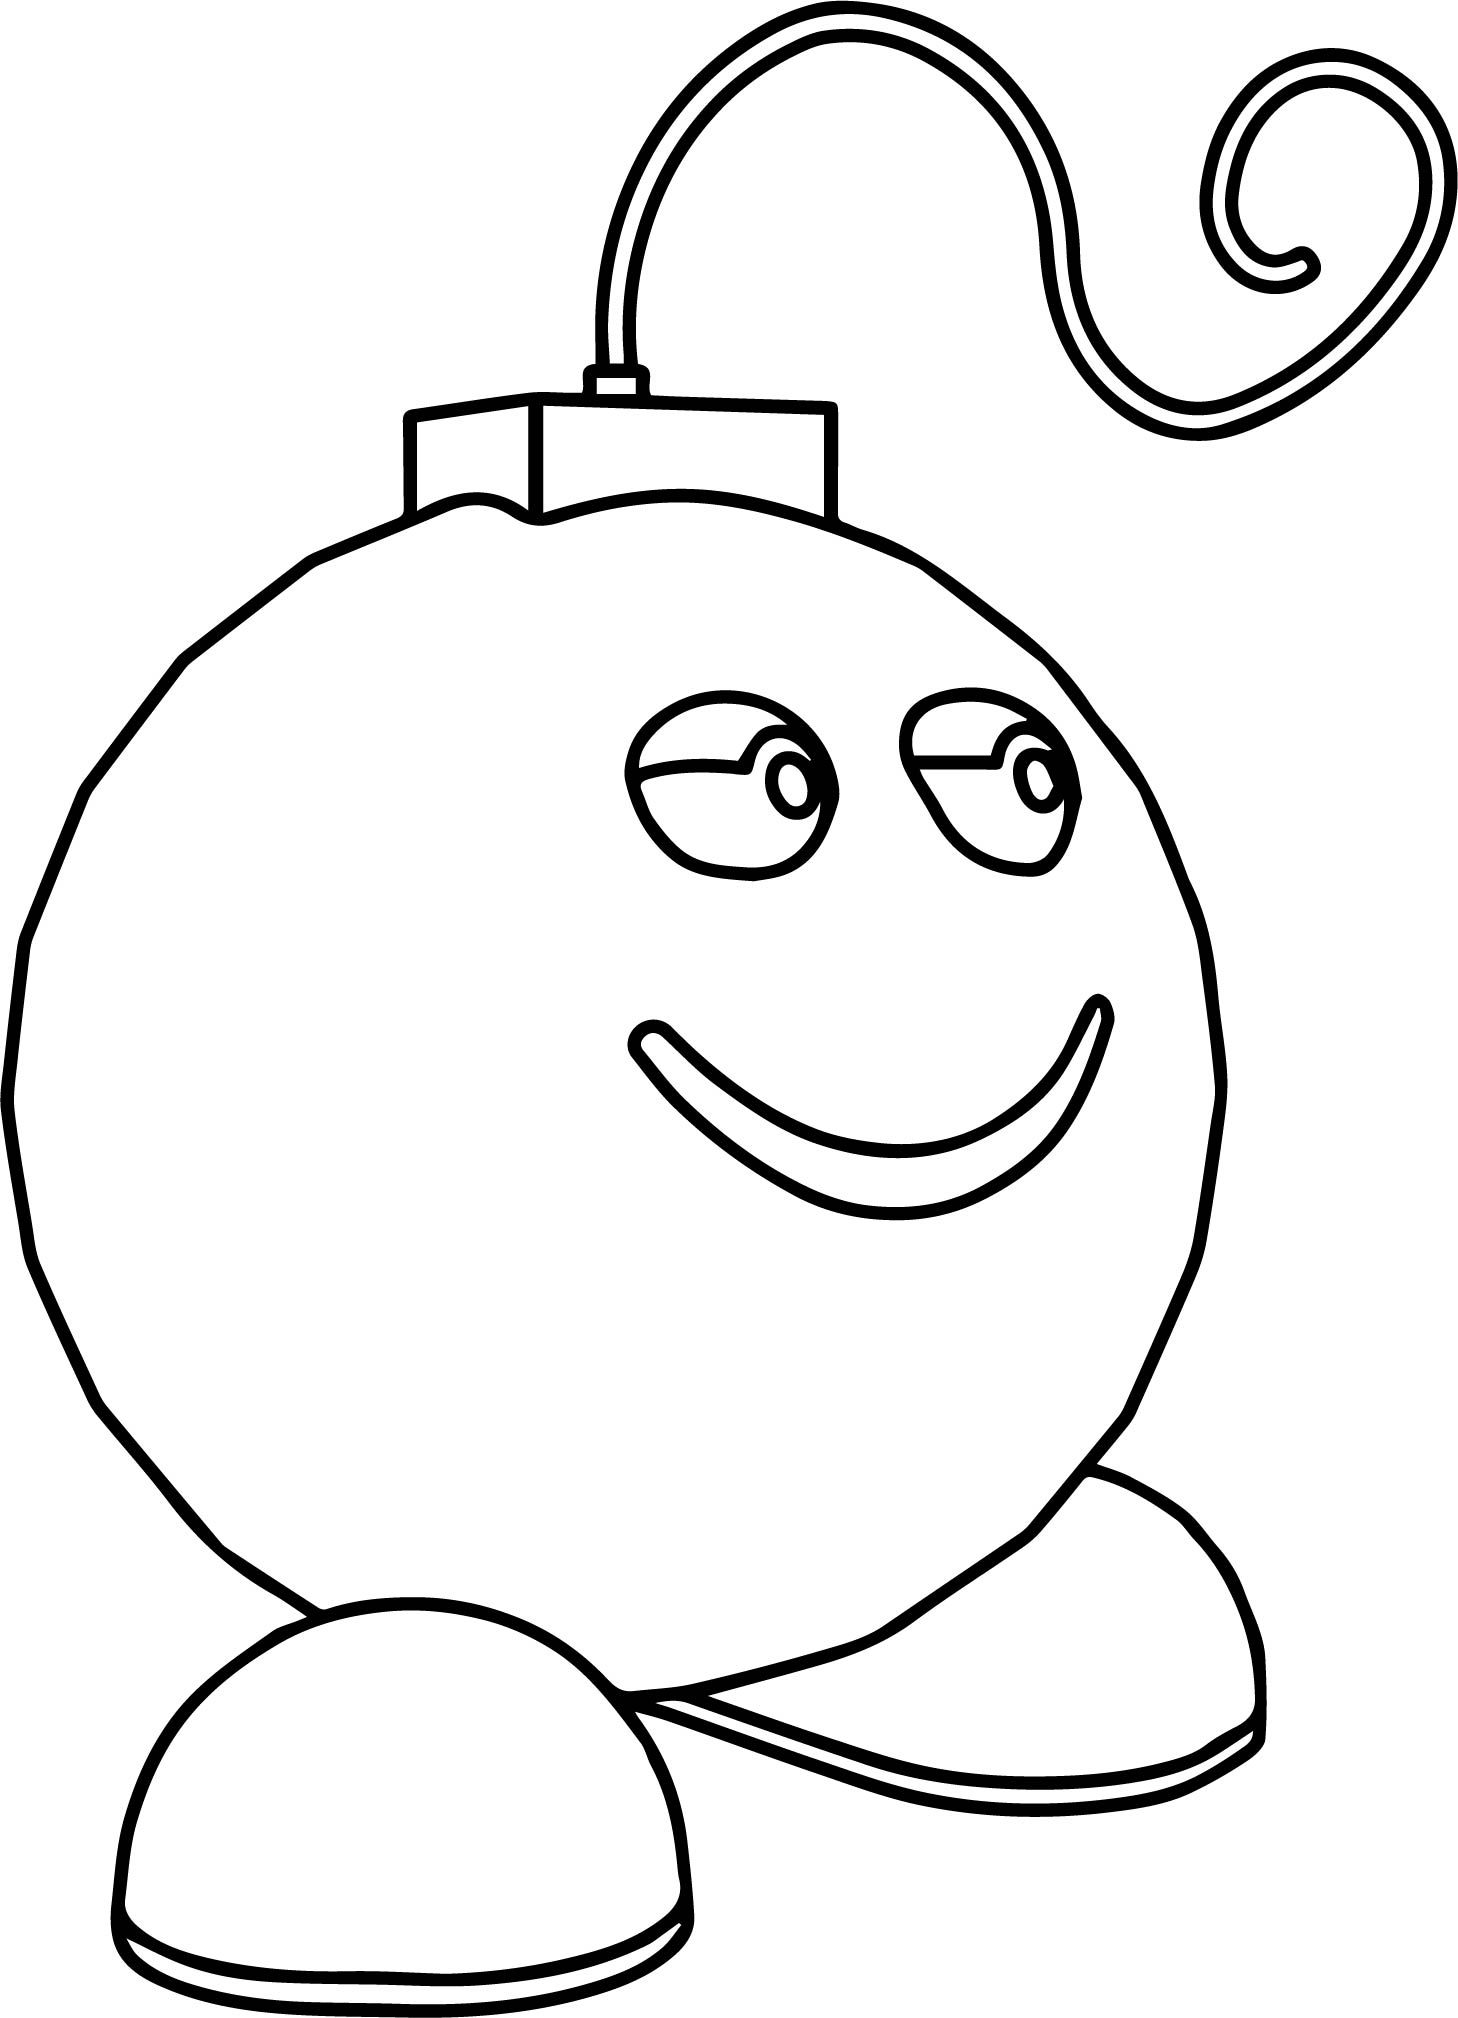 Kid Dynamite Coloring Page